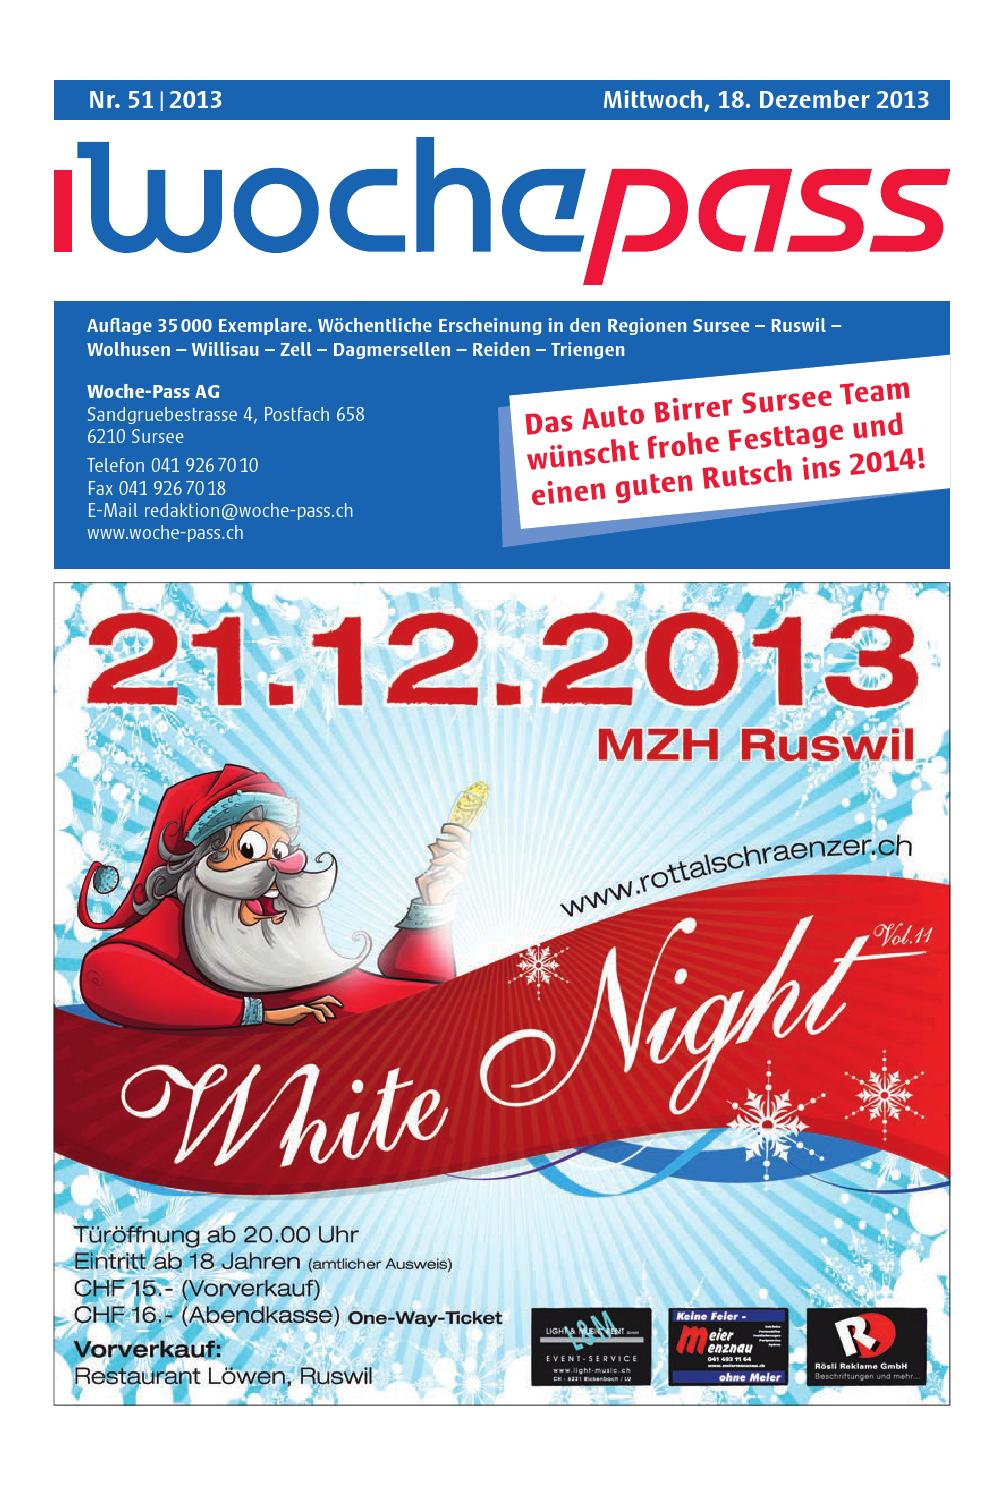 Woche-Pass | KW51 | 18. Dezember 2013 by Woche-Pass AG - issuu